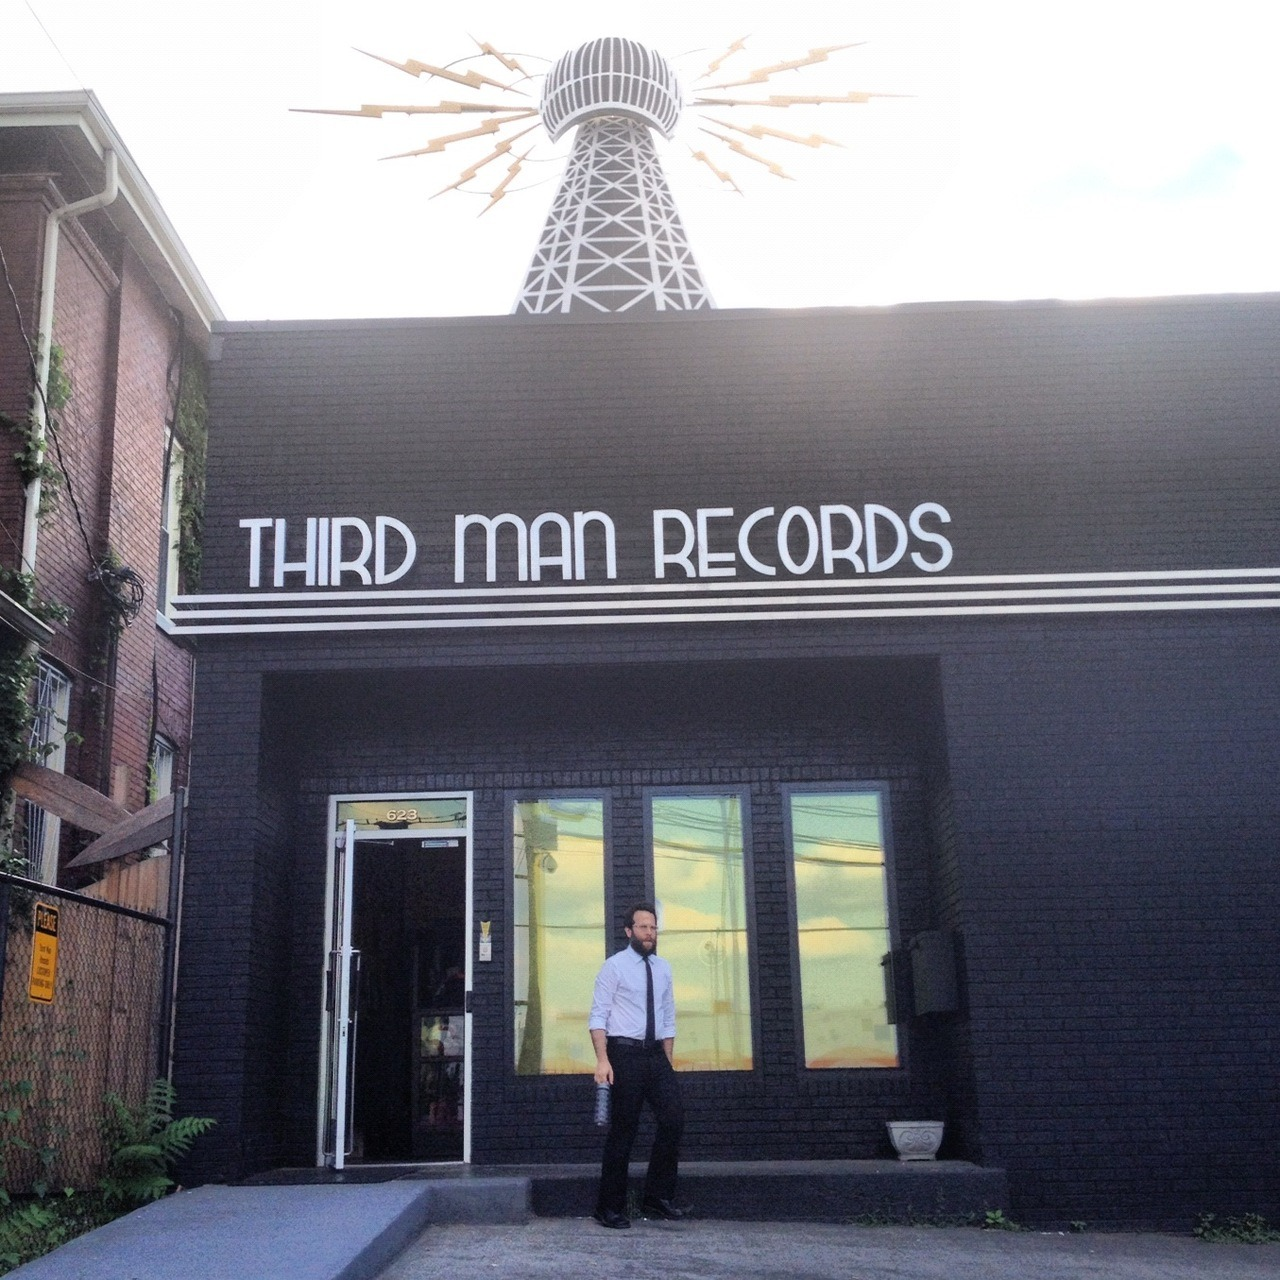 Rock On / Third Man Records / 623 7th Ave South / Nashville, Tennessee / 06.04.12 / 5:39PM